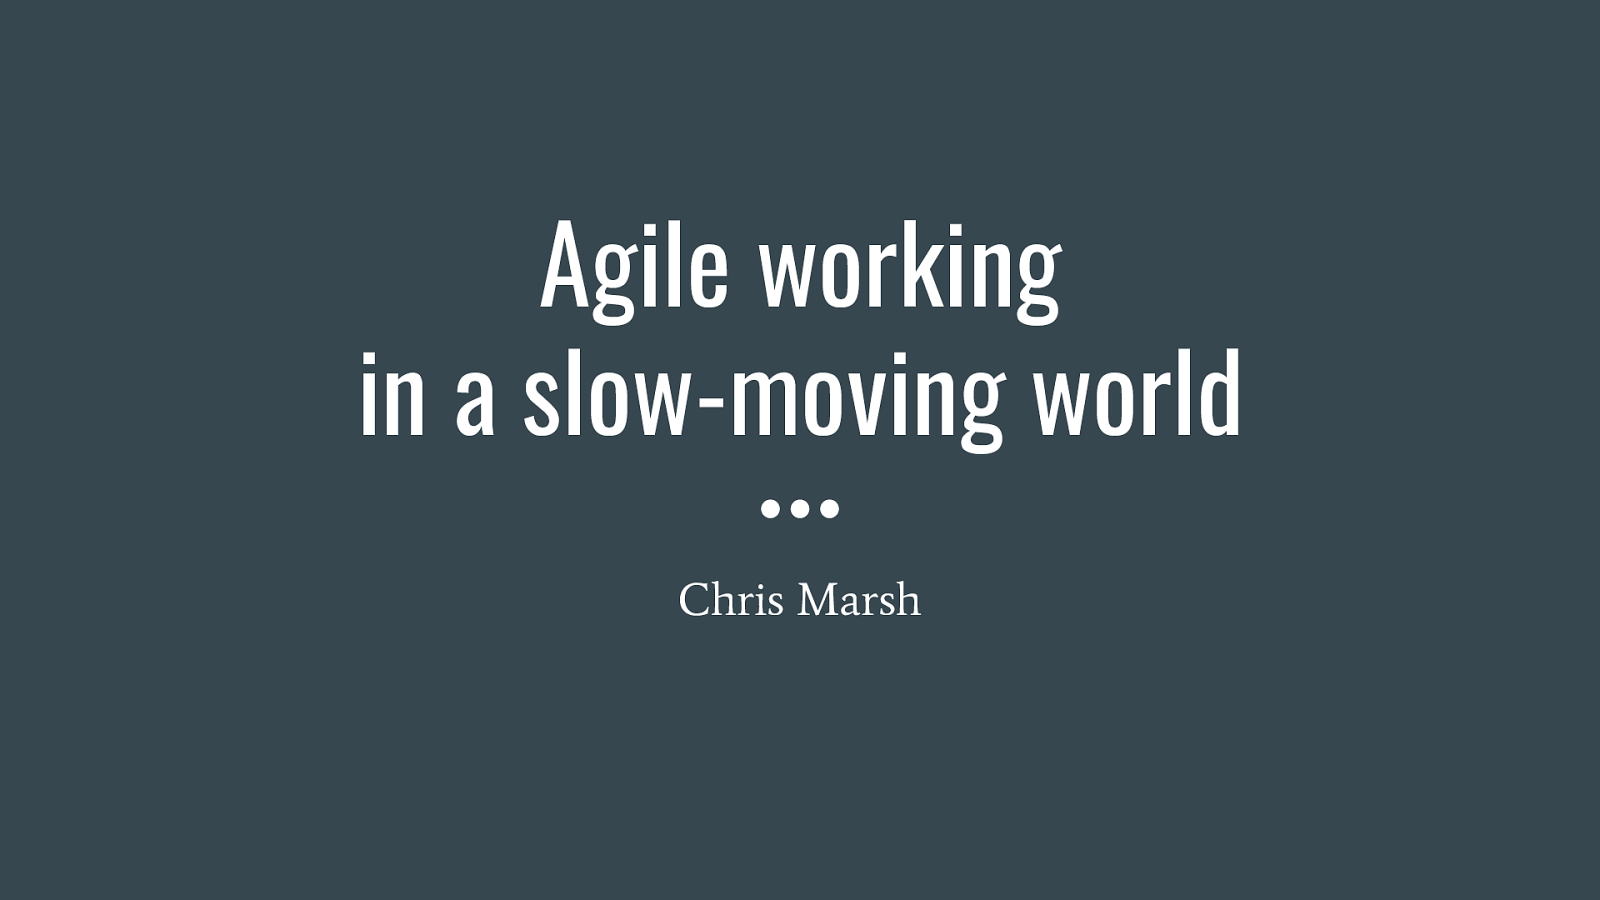 Agile working in a slow-moving world